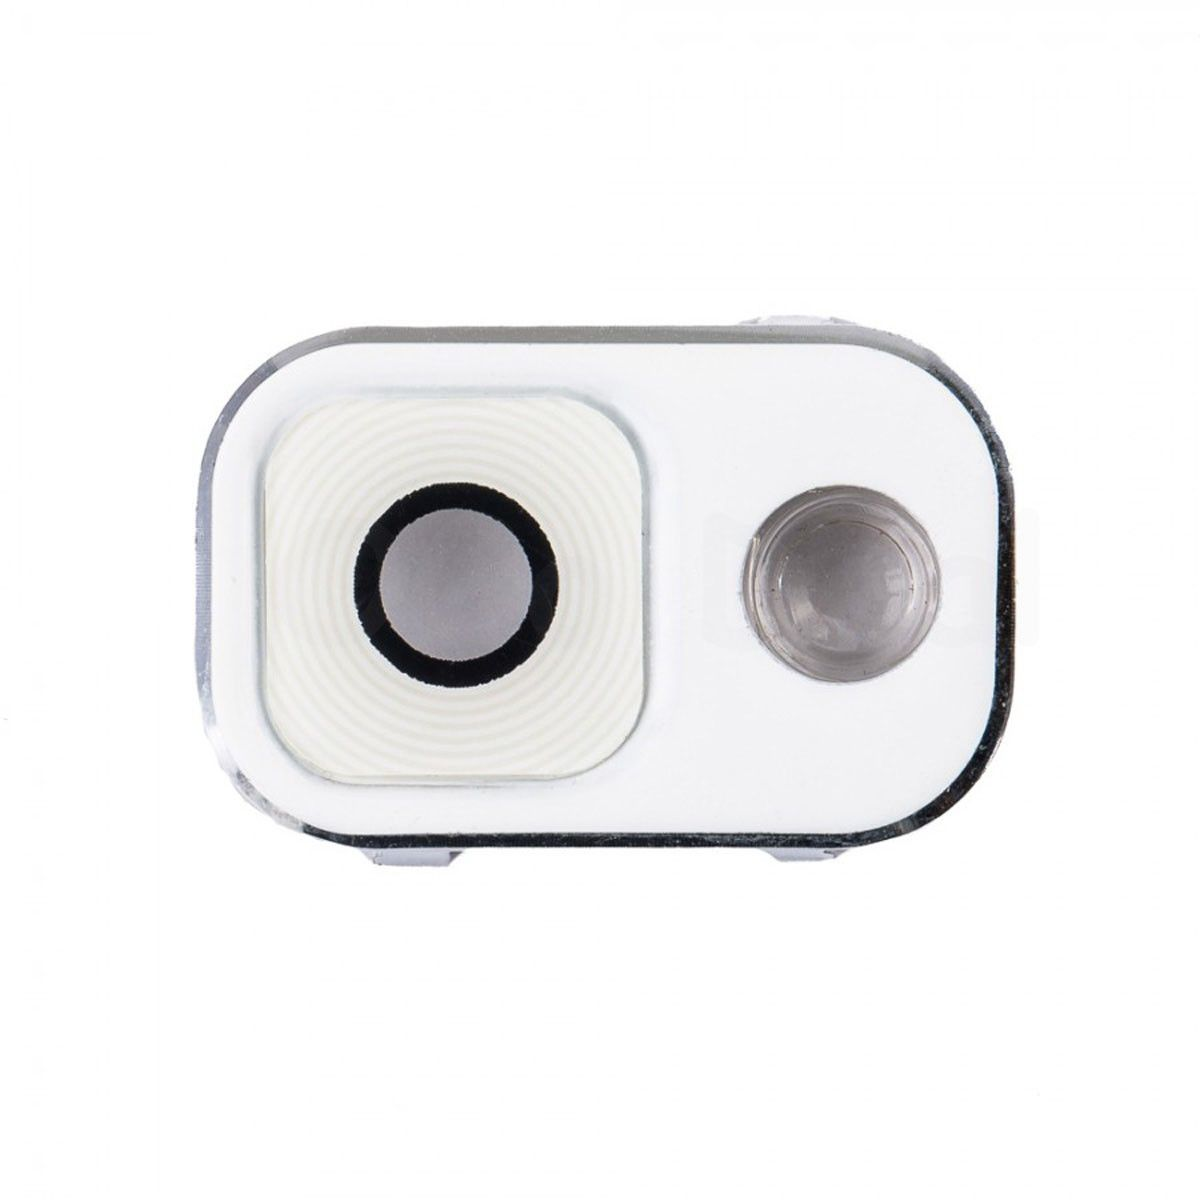 meet 20e09 7b58f Replacement for Samsung Galaxy Note 3 Rear Camera Lens Cover with ...